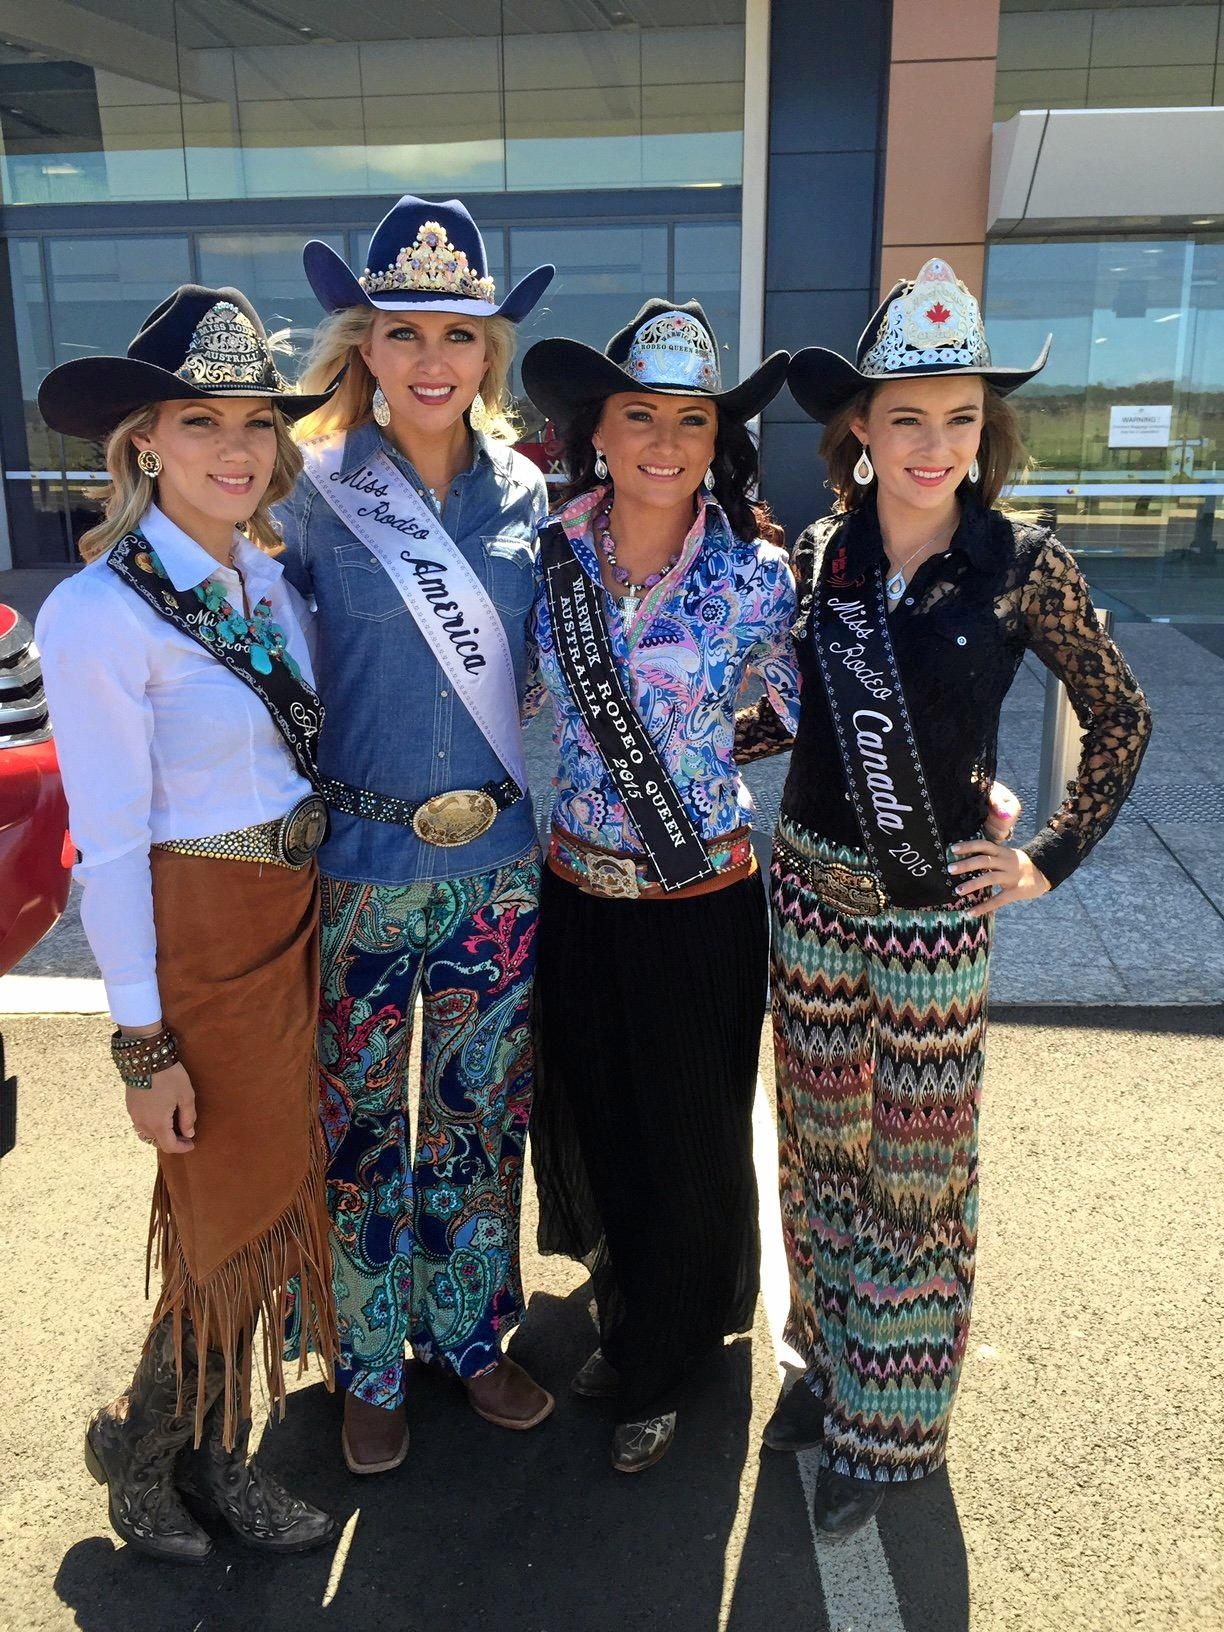 Miss Rodeos (from left) Australia's Danika Boland, America's Lauren Heaton, Warwick's Georgie Stower and Canada's Katy Lucas arrived at Wellcamp airport.